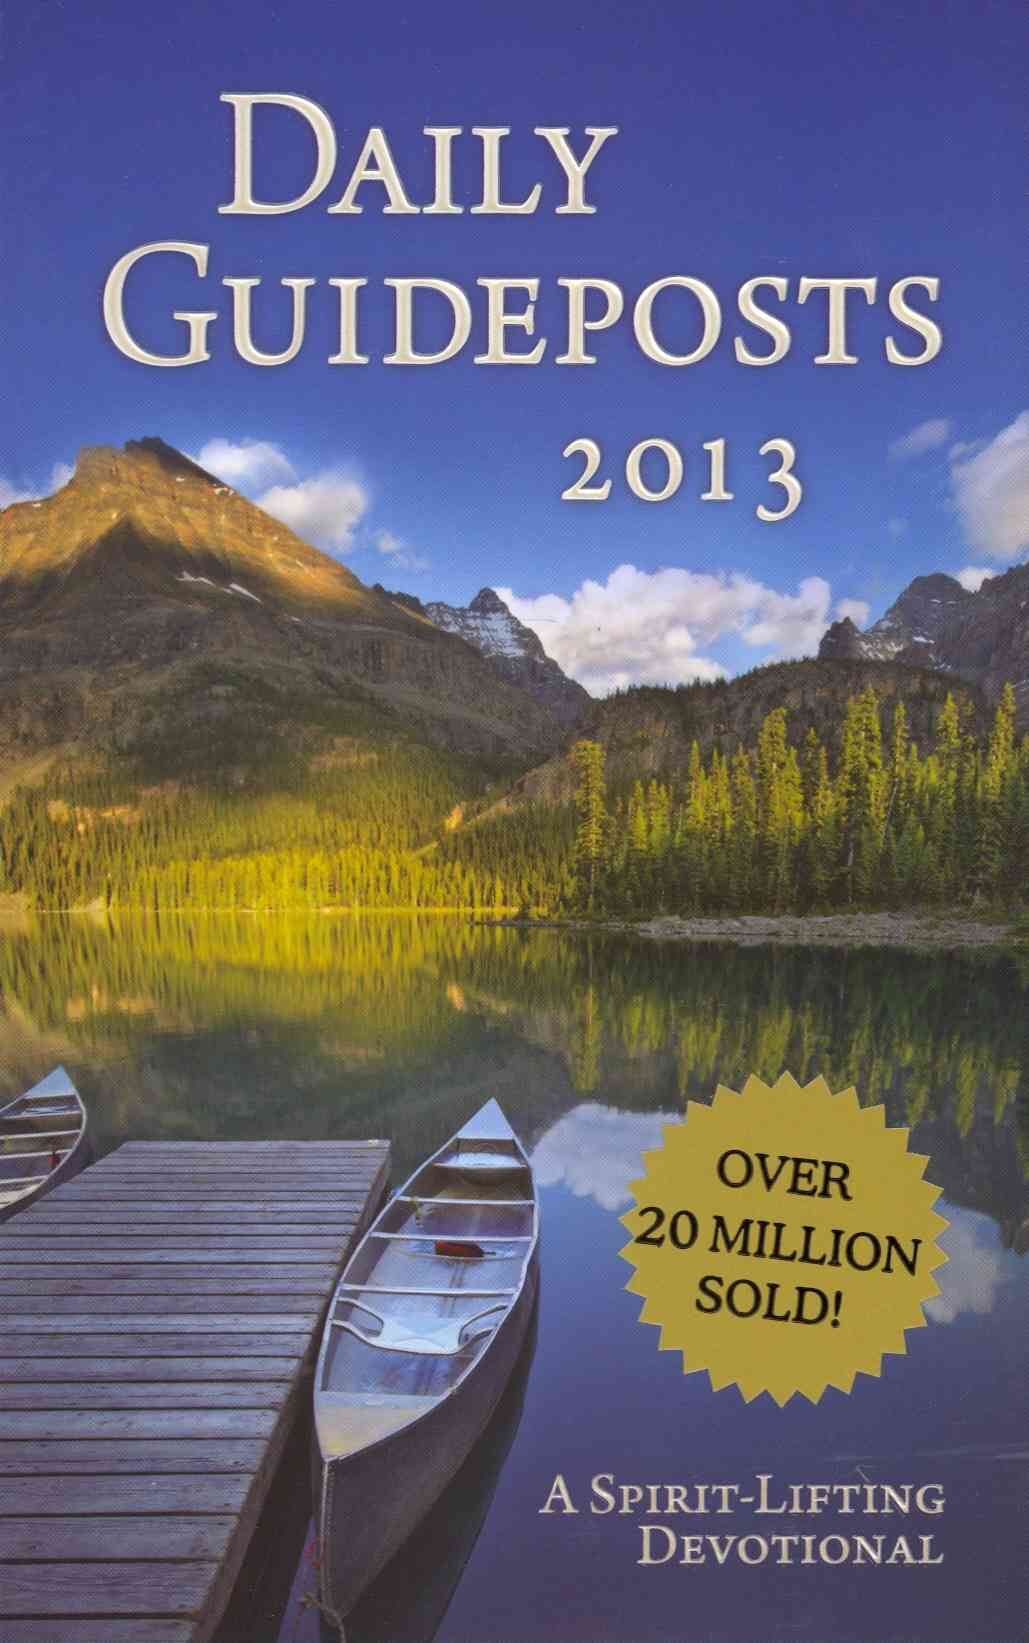 Daily Guideposts 2013 (Hardcover)